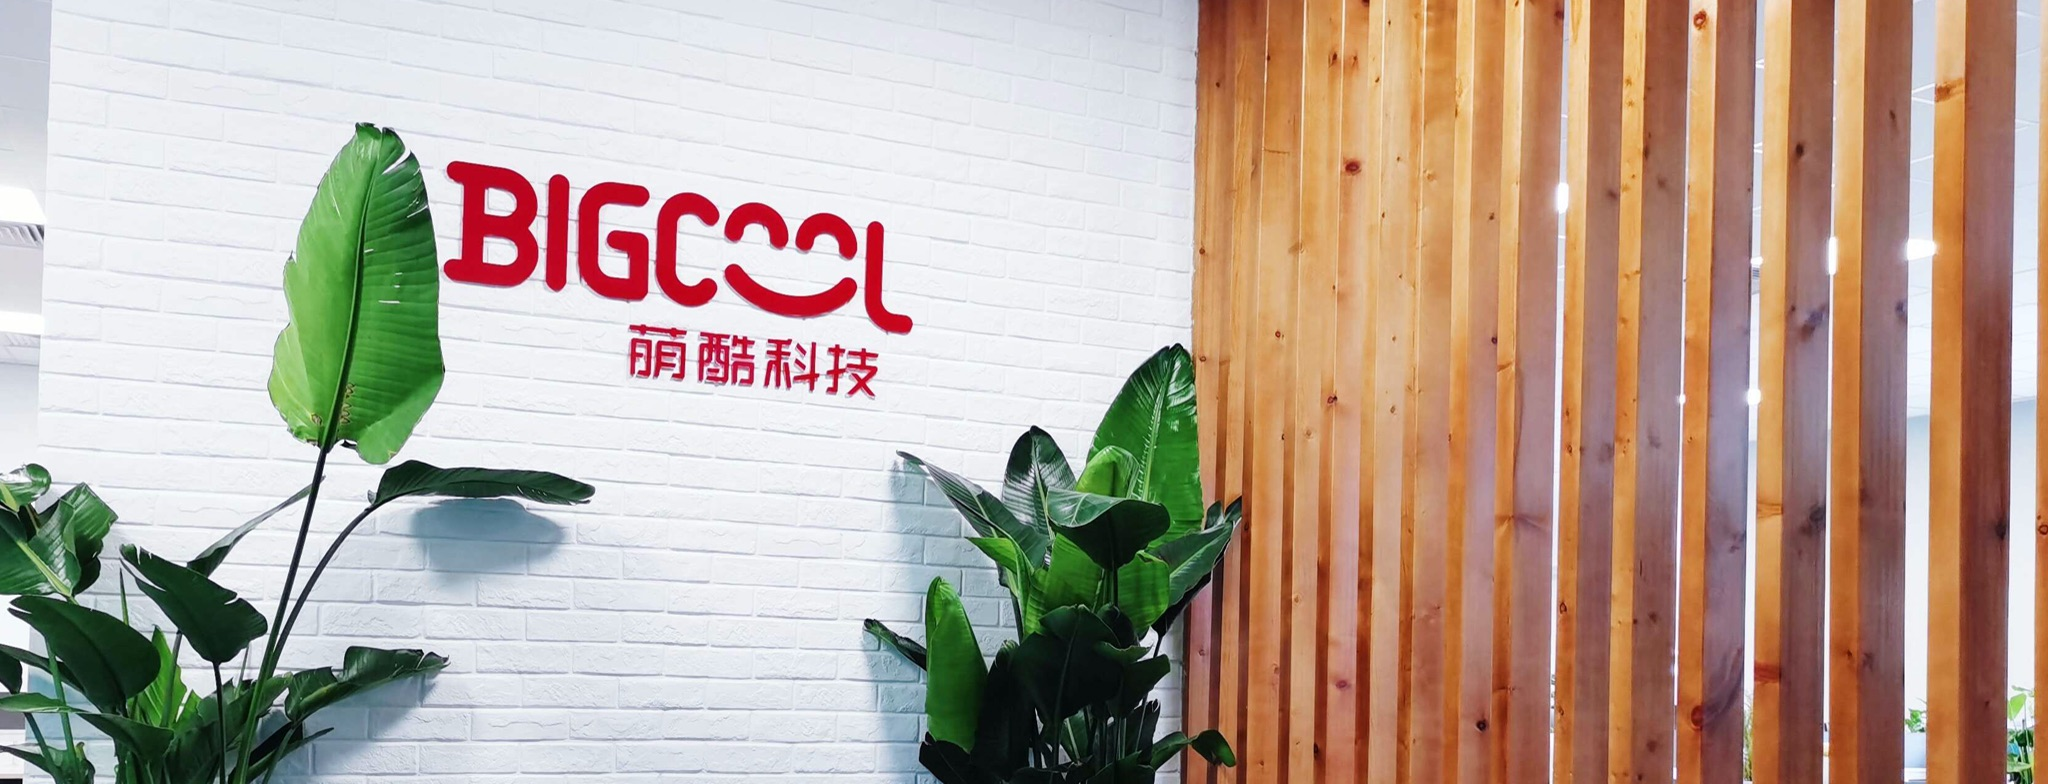 About Bigcool